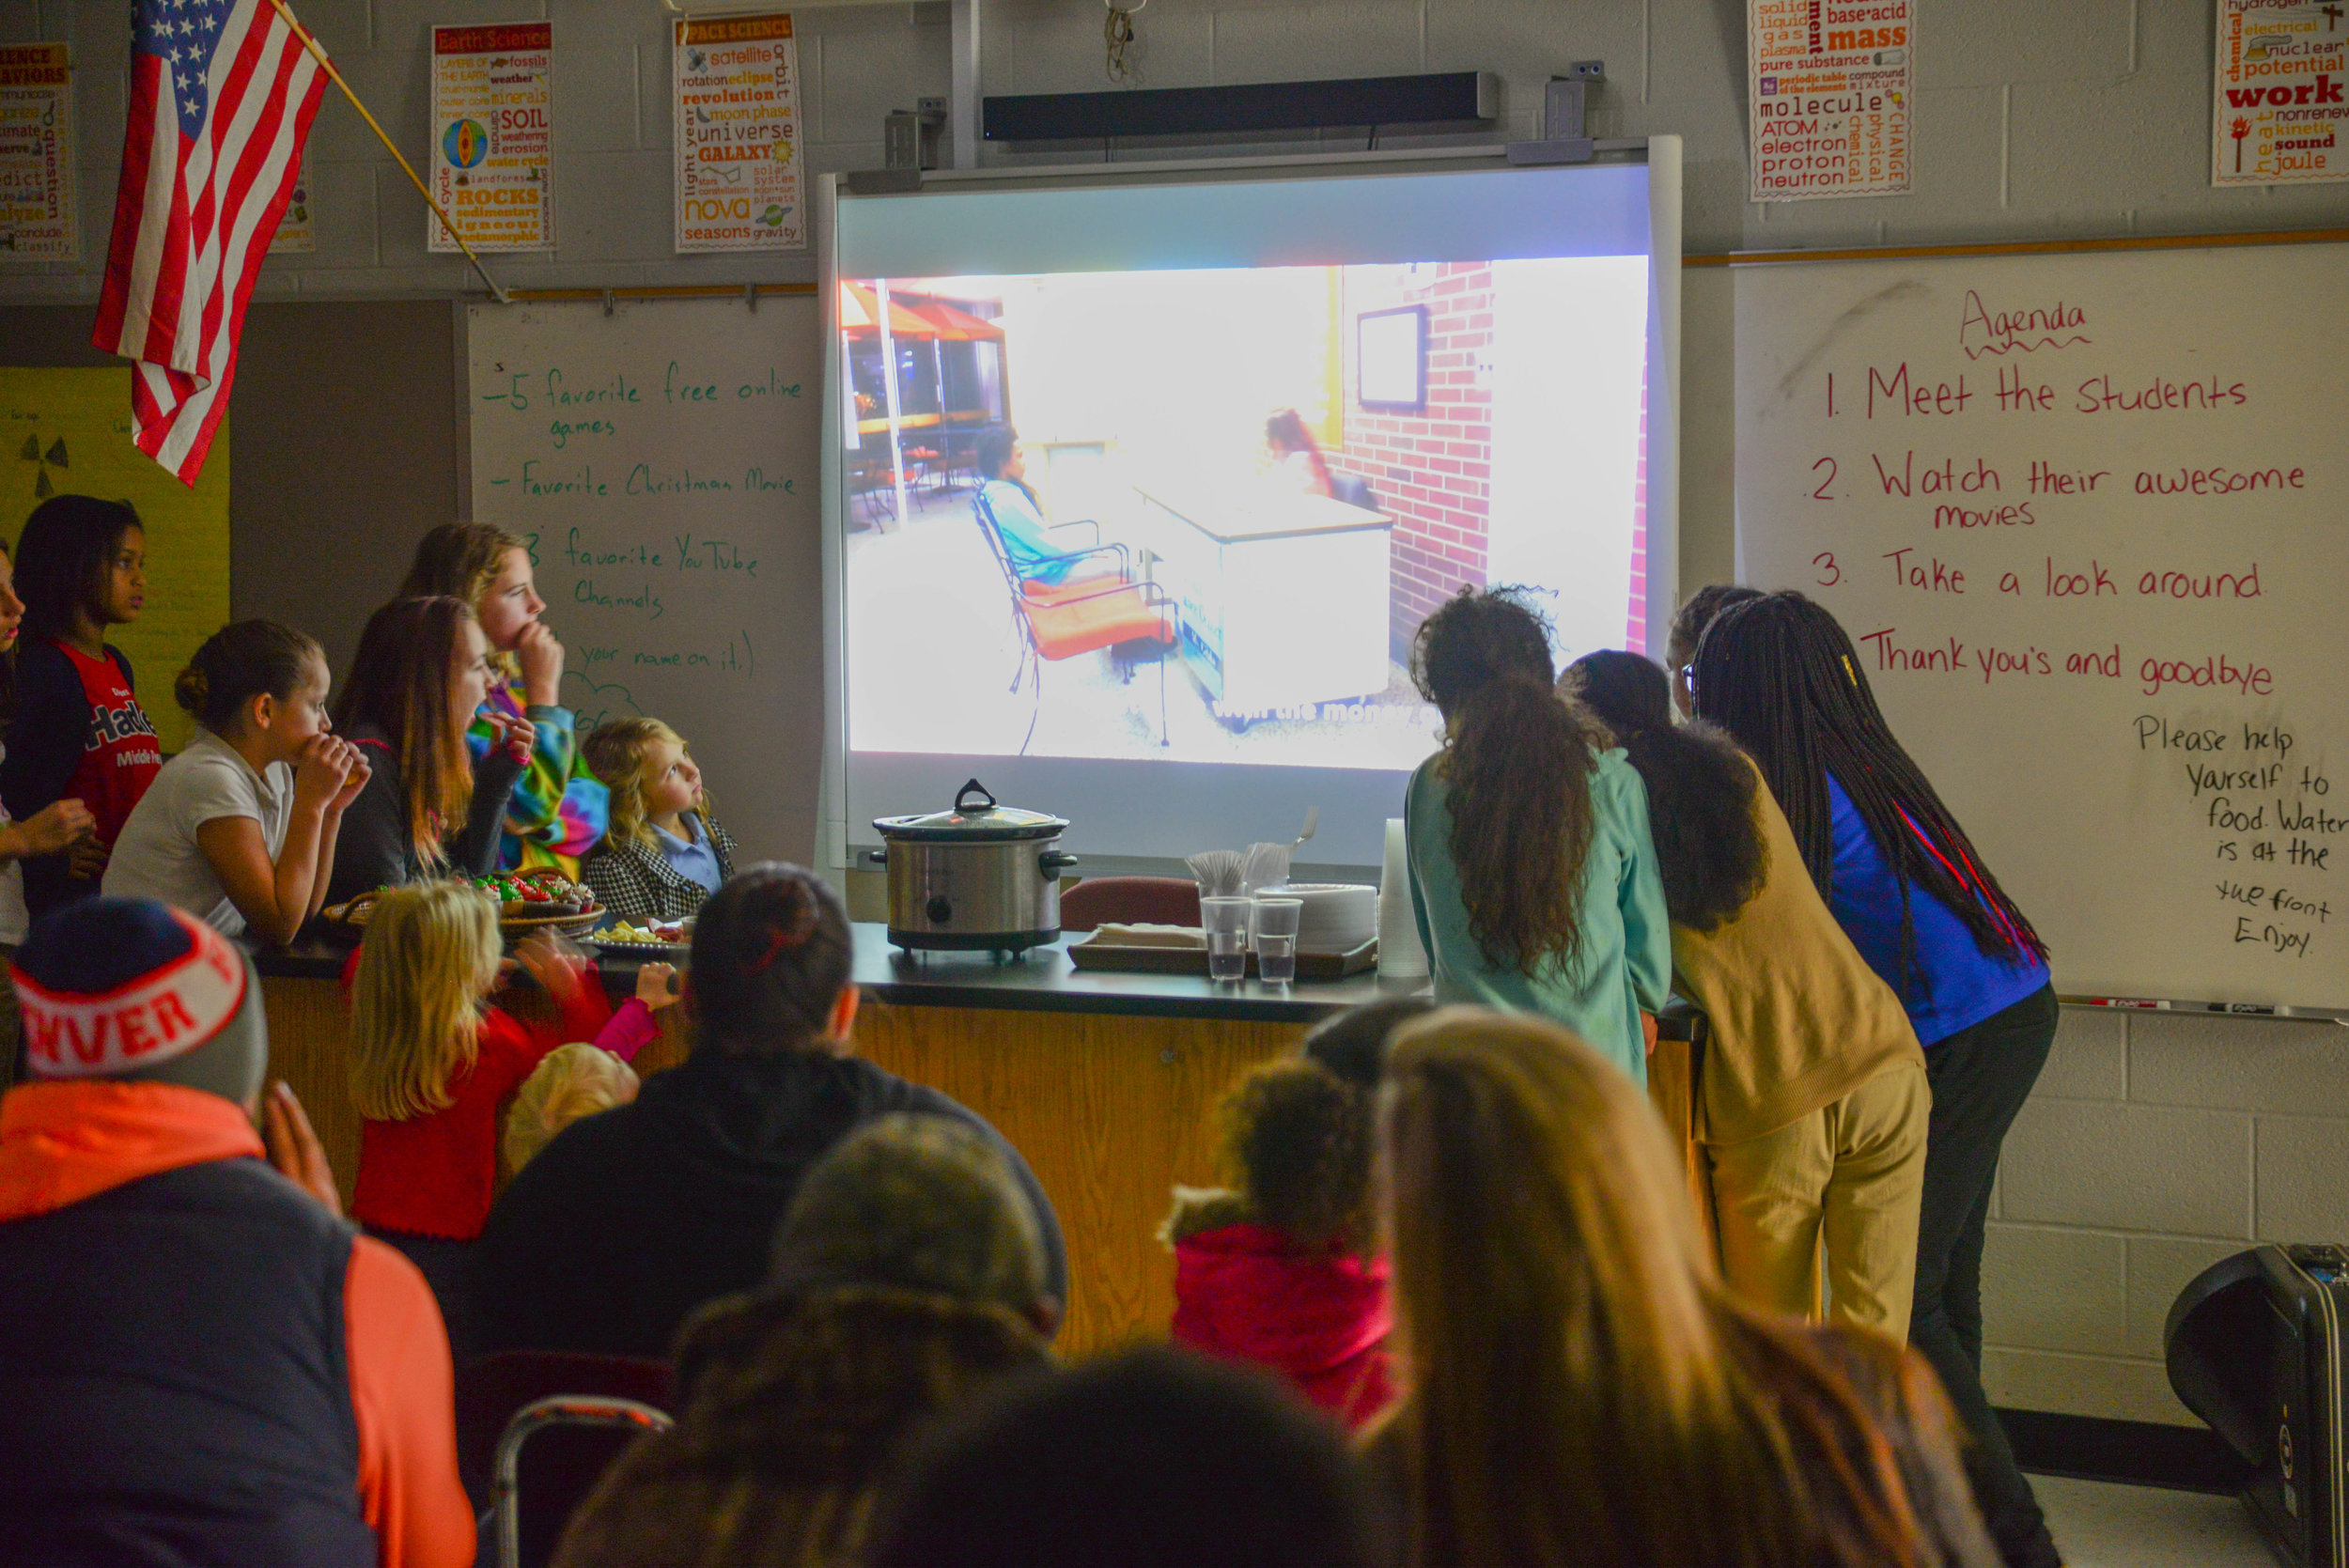 Our C.A.S.E. program continued at two sites, both serving students from Dupont-Hadley Middle Prep. At the end of the fall semester, students showCASE-d what they'd learned for their parents. At the Dupont-Hadley site, they premiered videos they wrote, directed and filmed together.